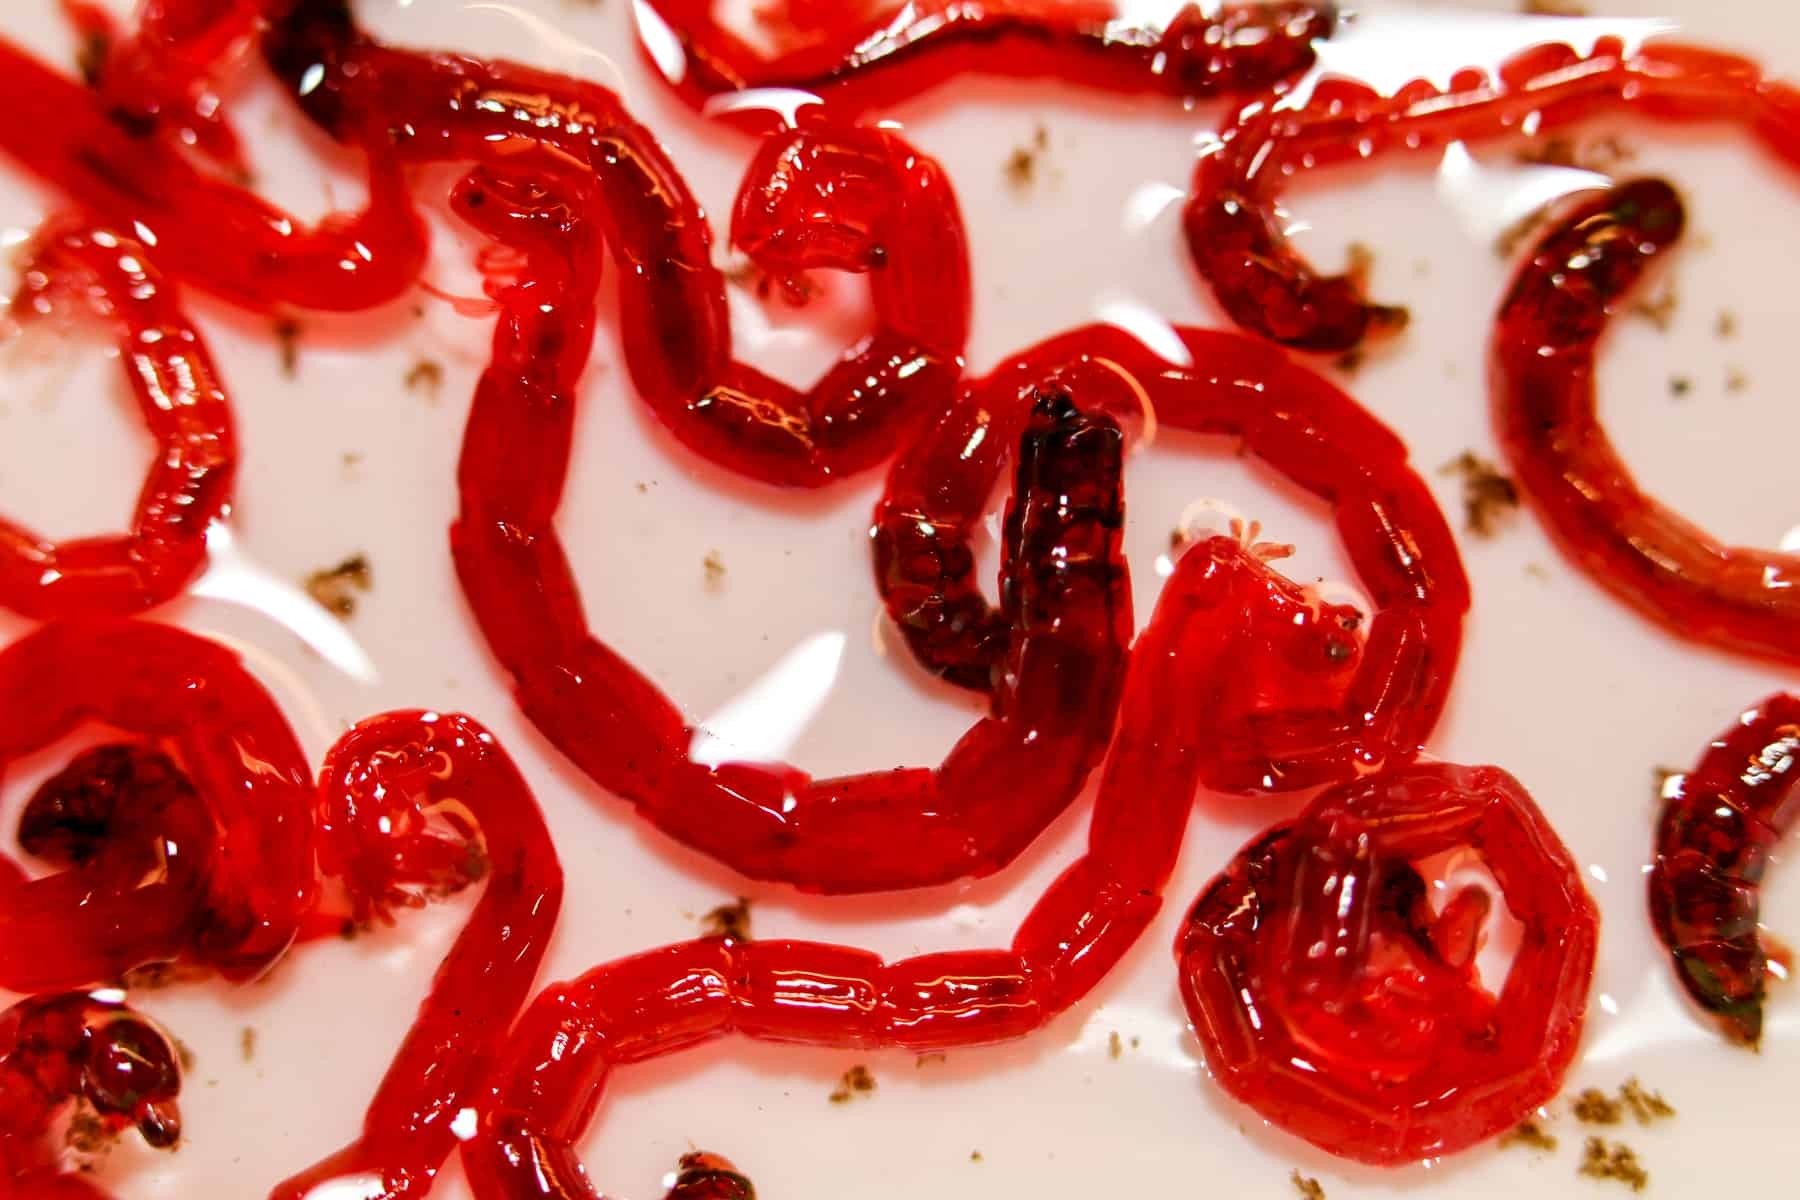 close up shot of bloodworms